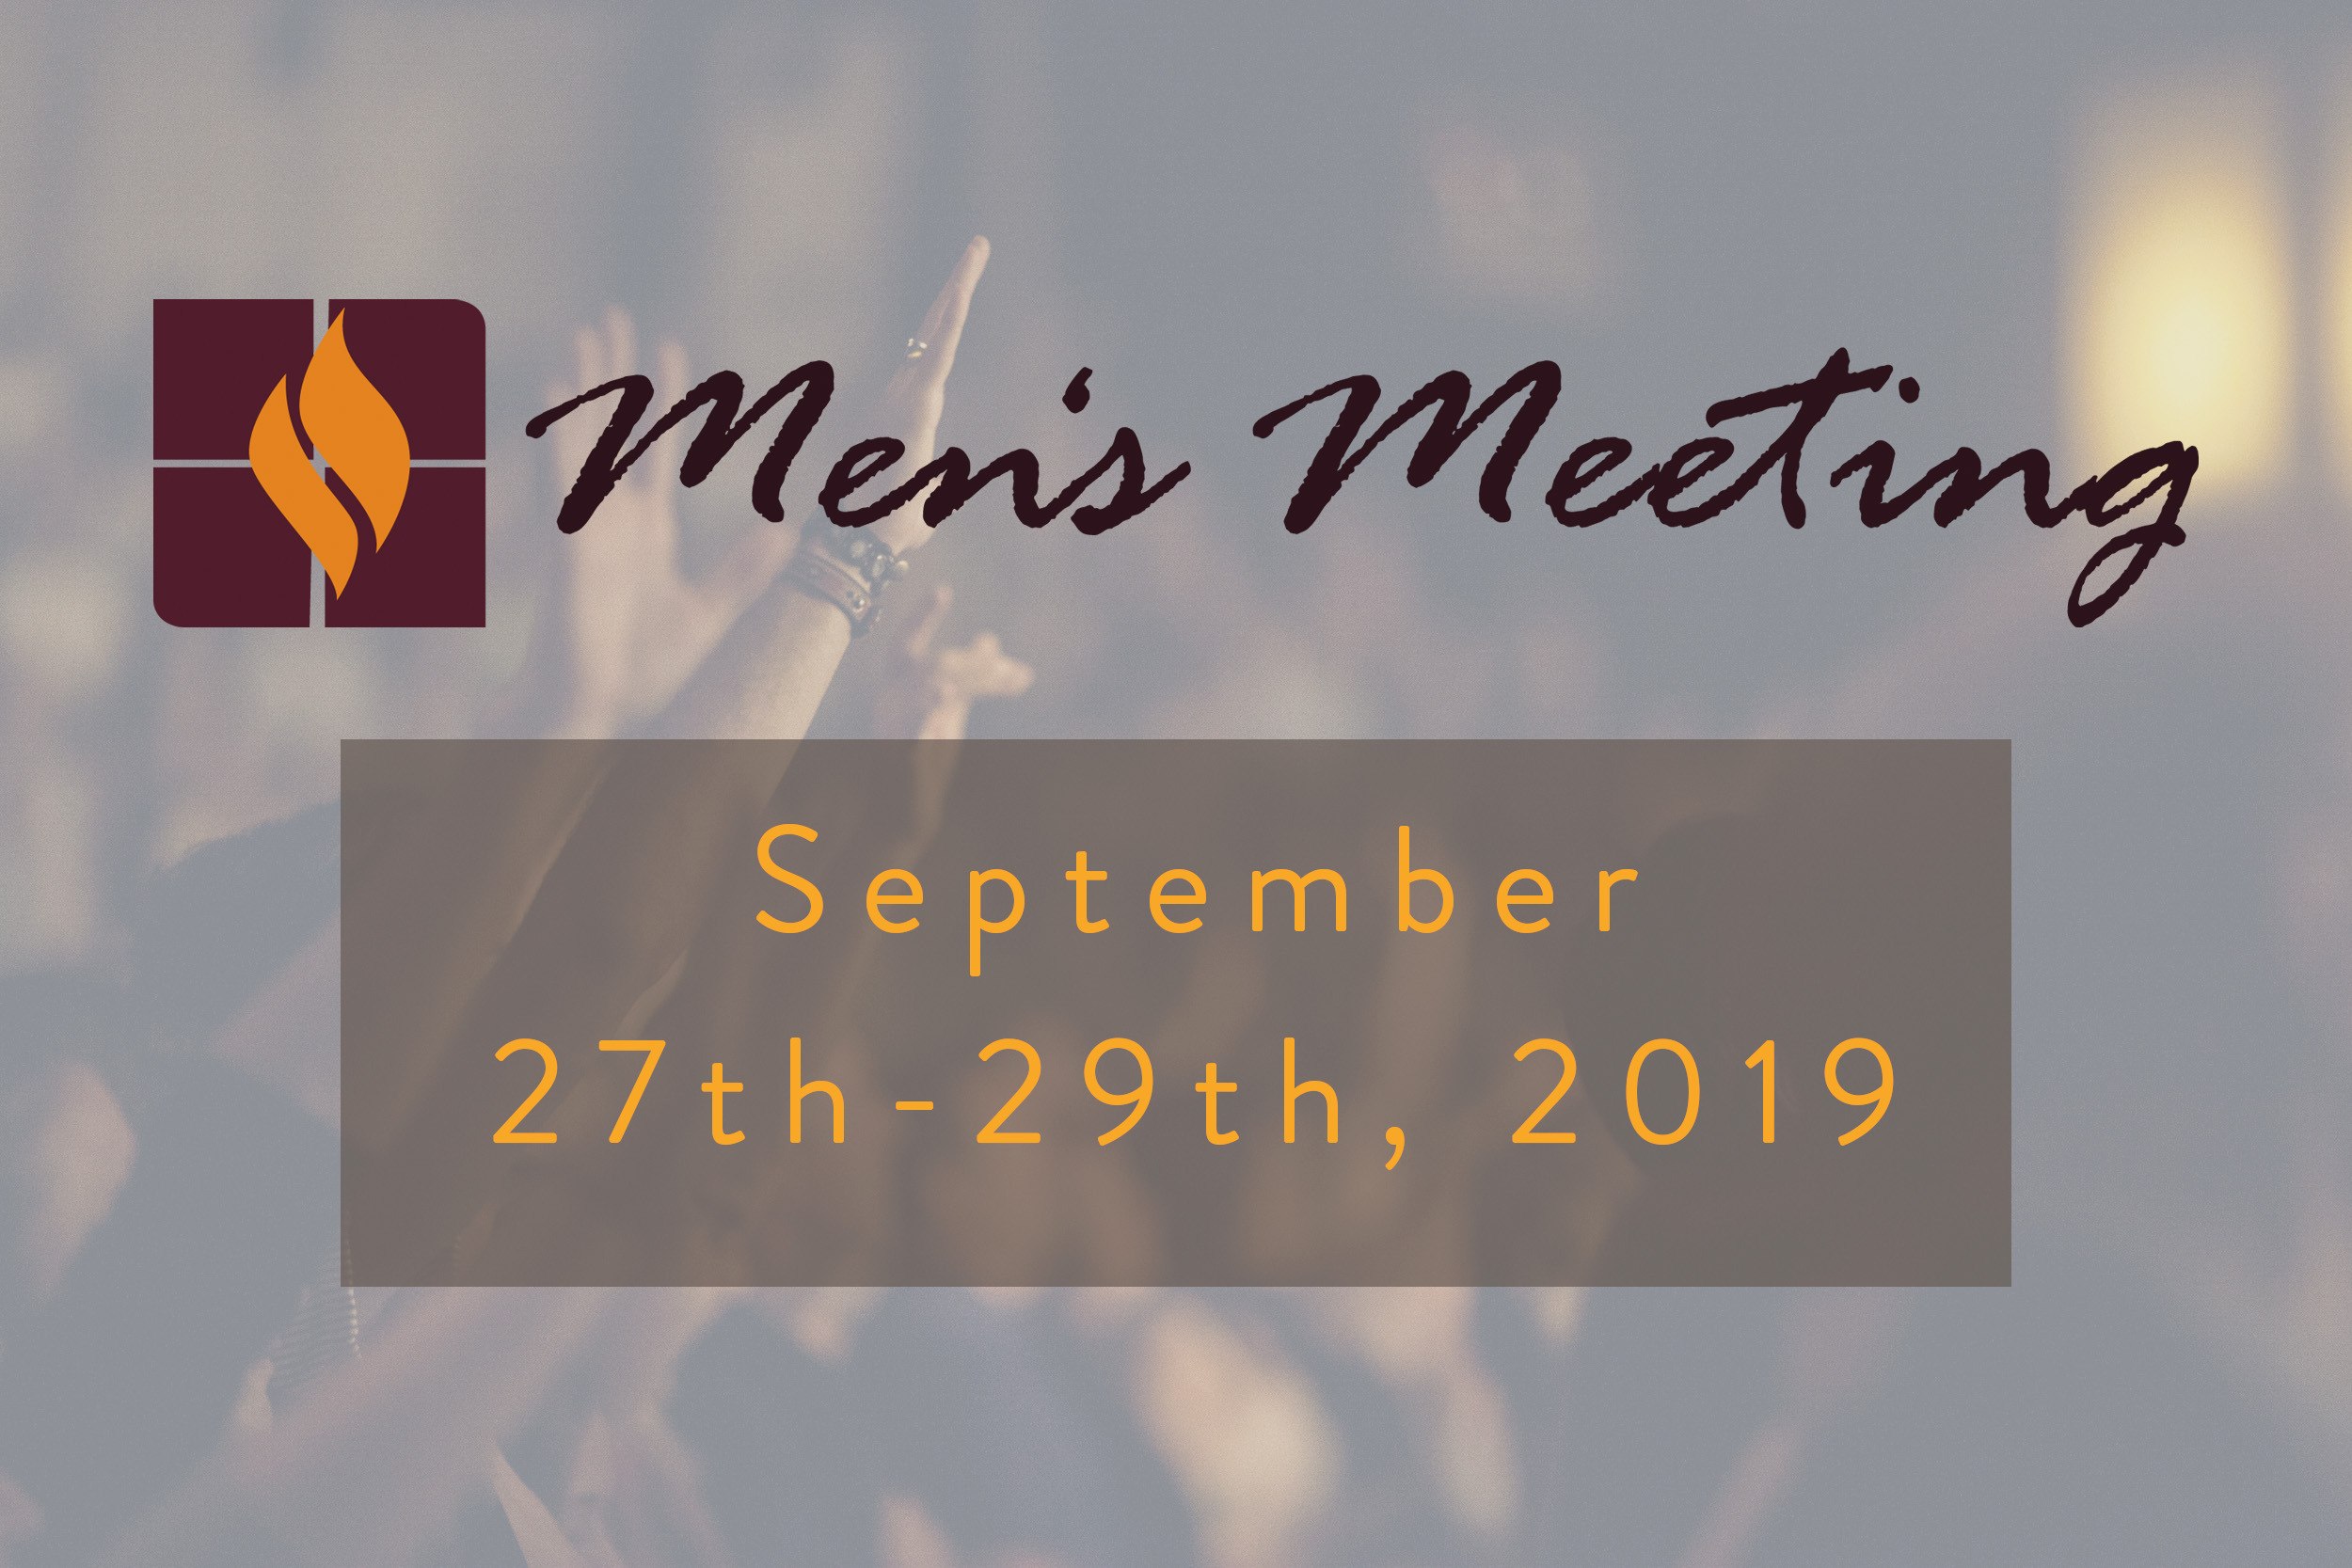 Men's Meeting 2019